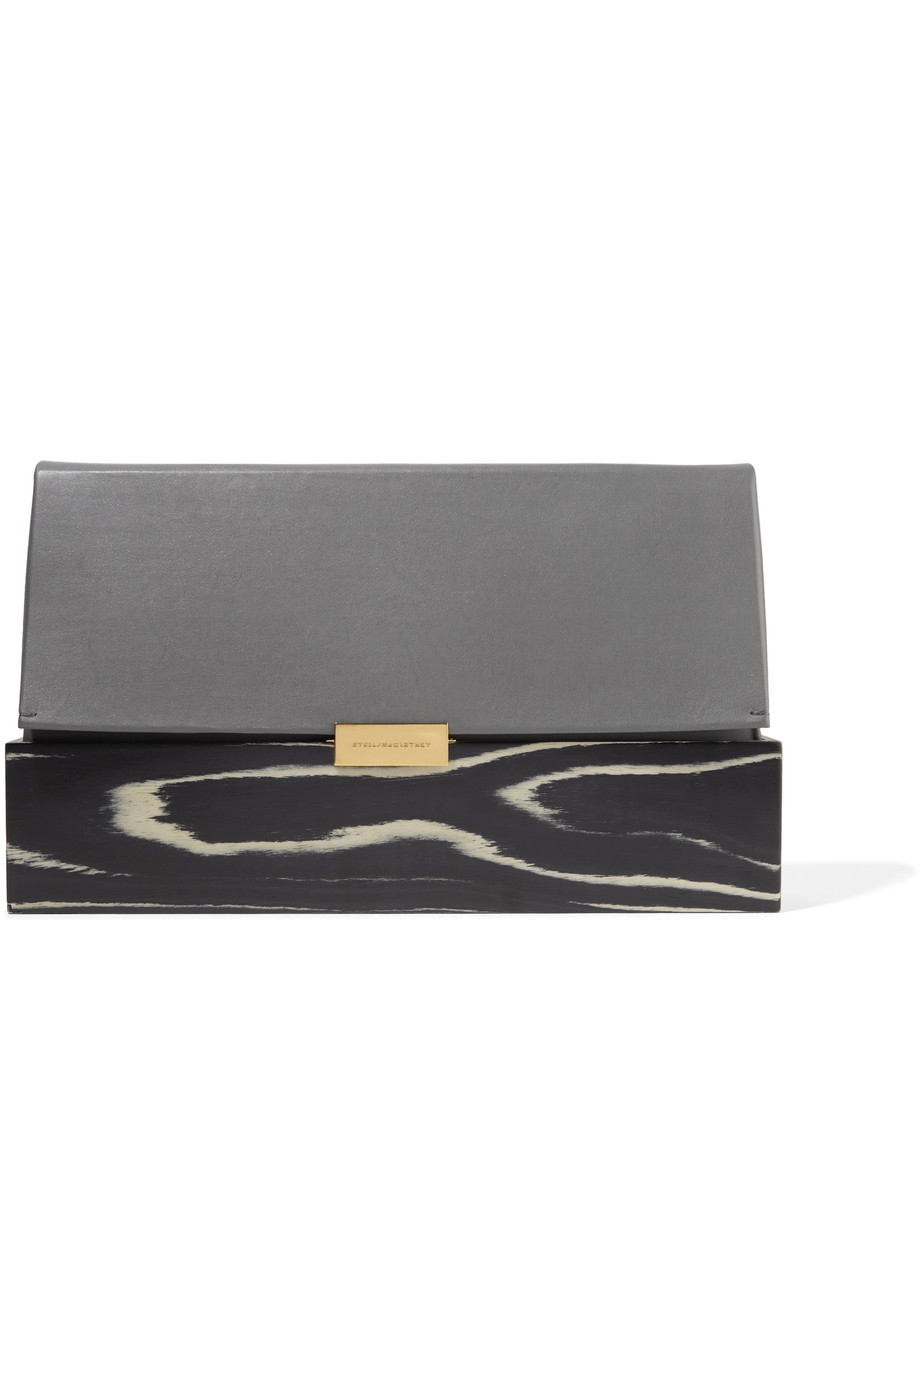 STELLA MCCARTNEY Faux Leather And Printed Wood Clutch